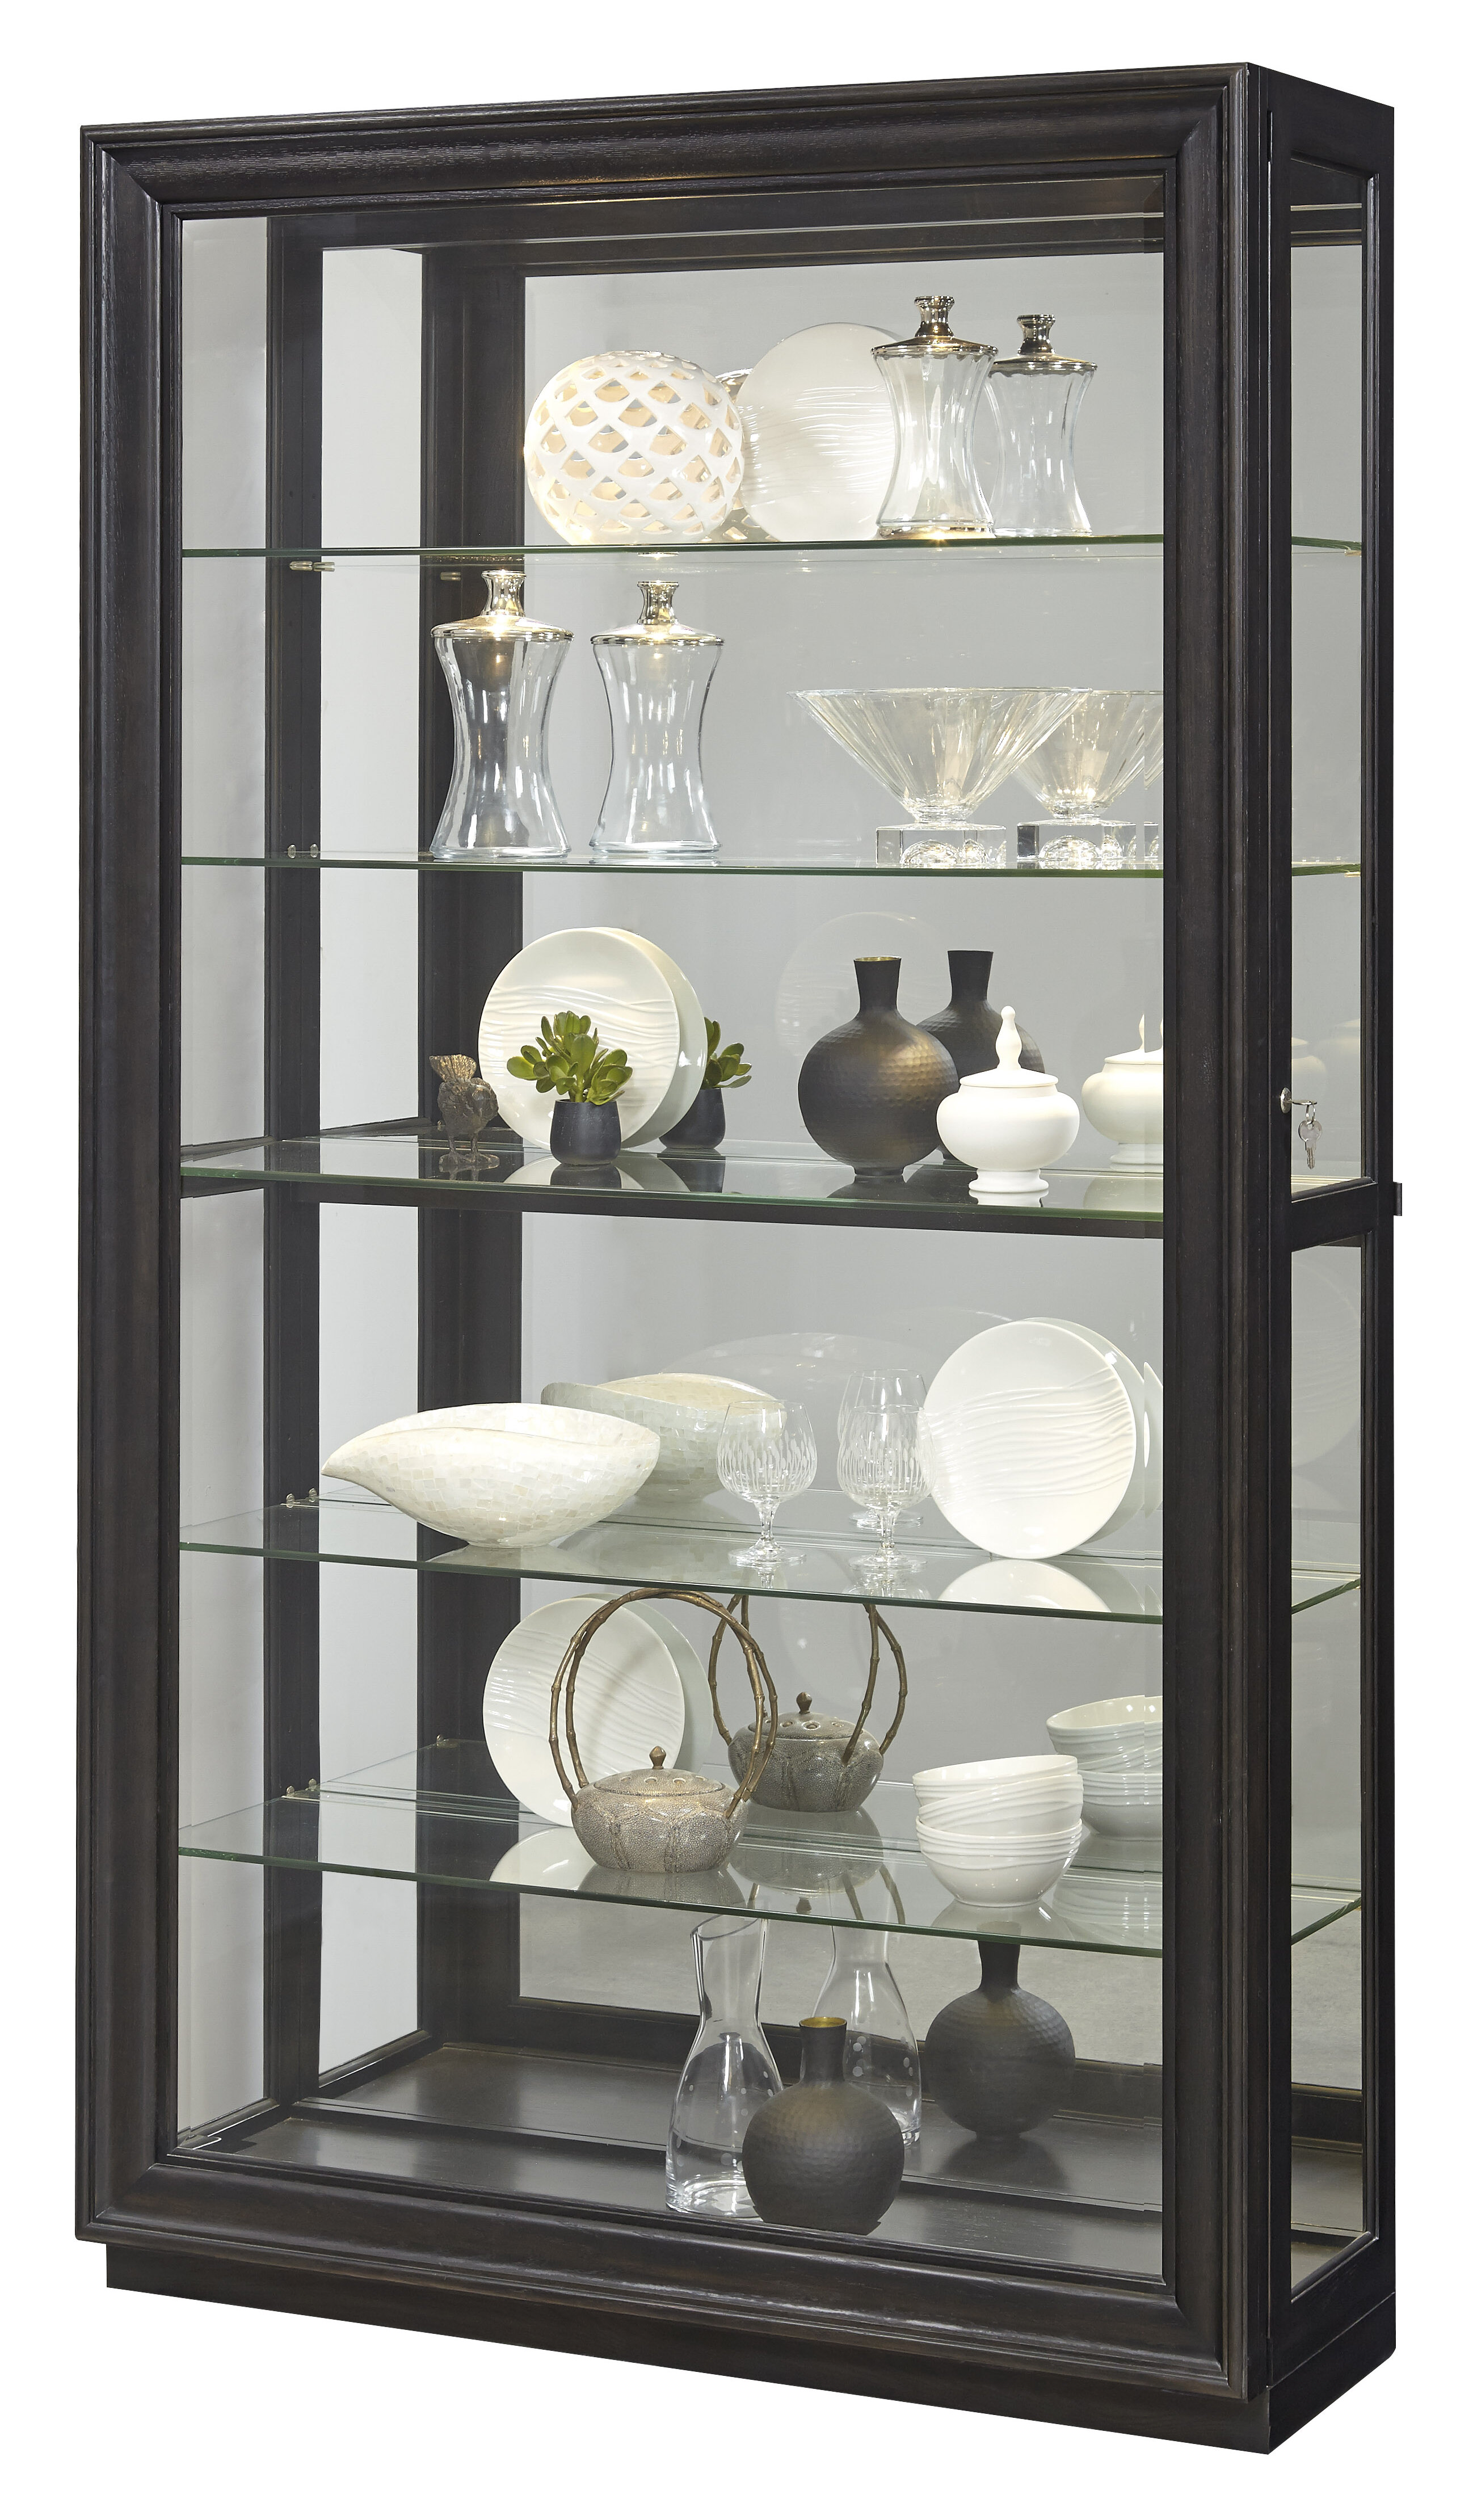 Darby Home Co Albrightsville Lighted Corner Curio Cabinet ...